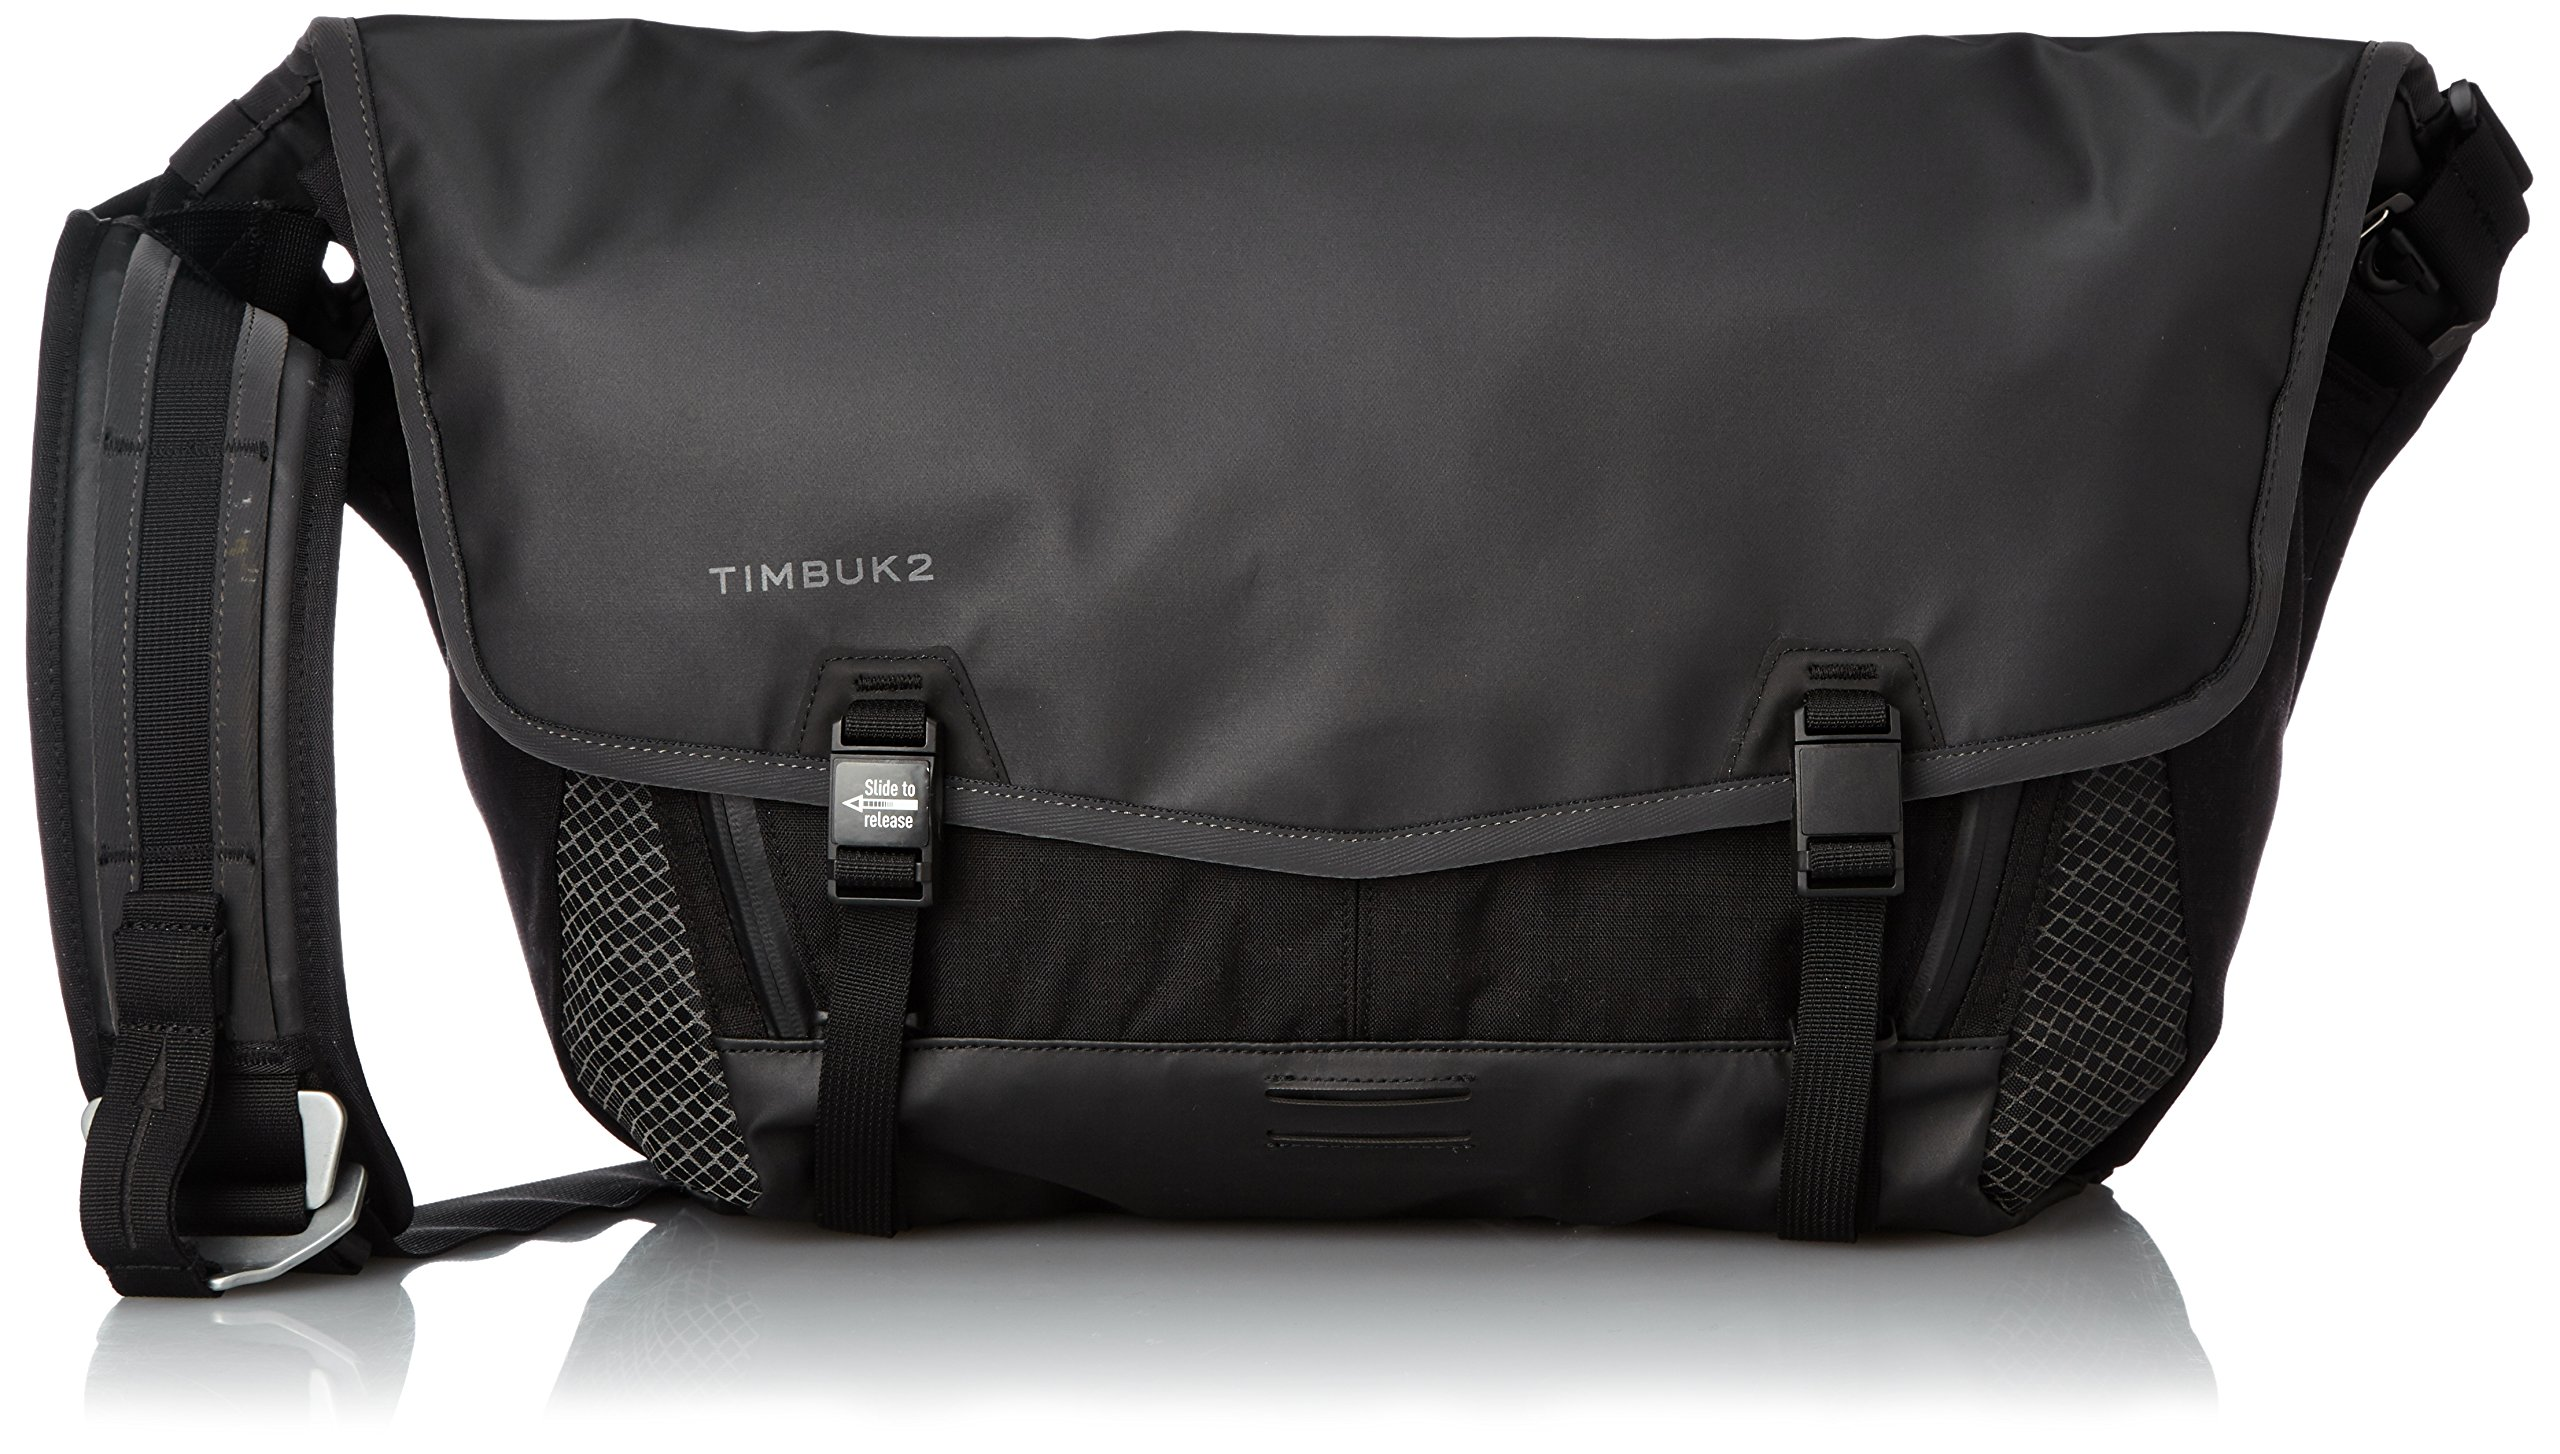 Timbuk2 Especial Messenger Bag, Black, Large